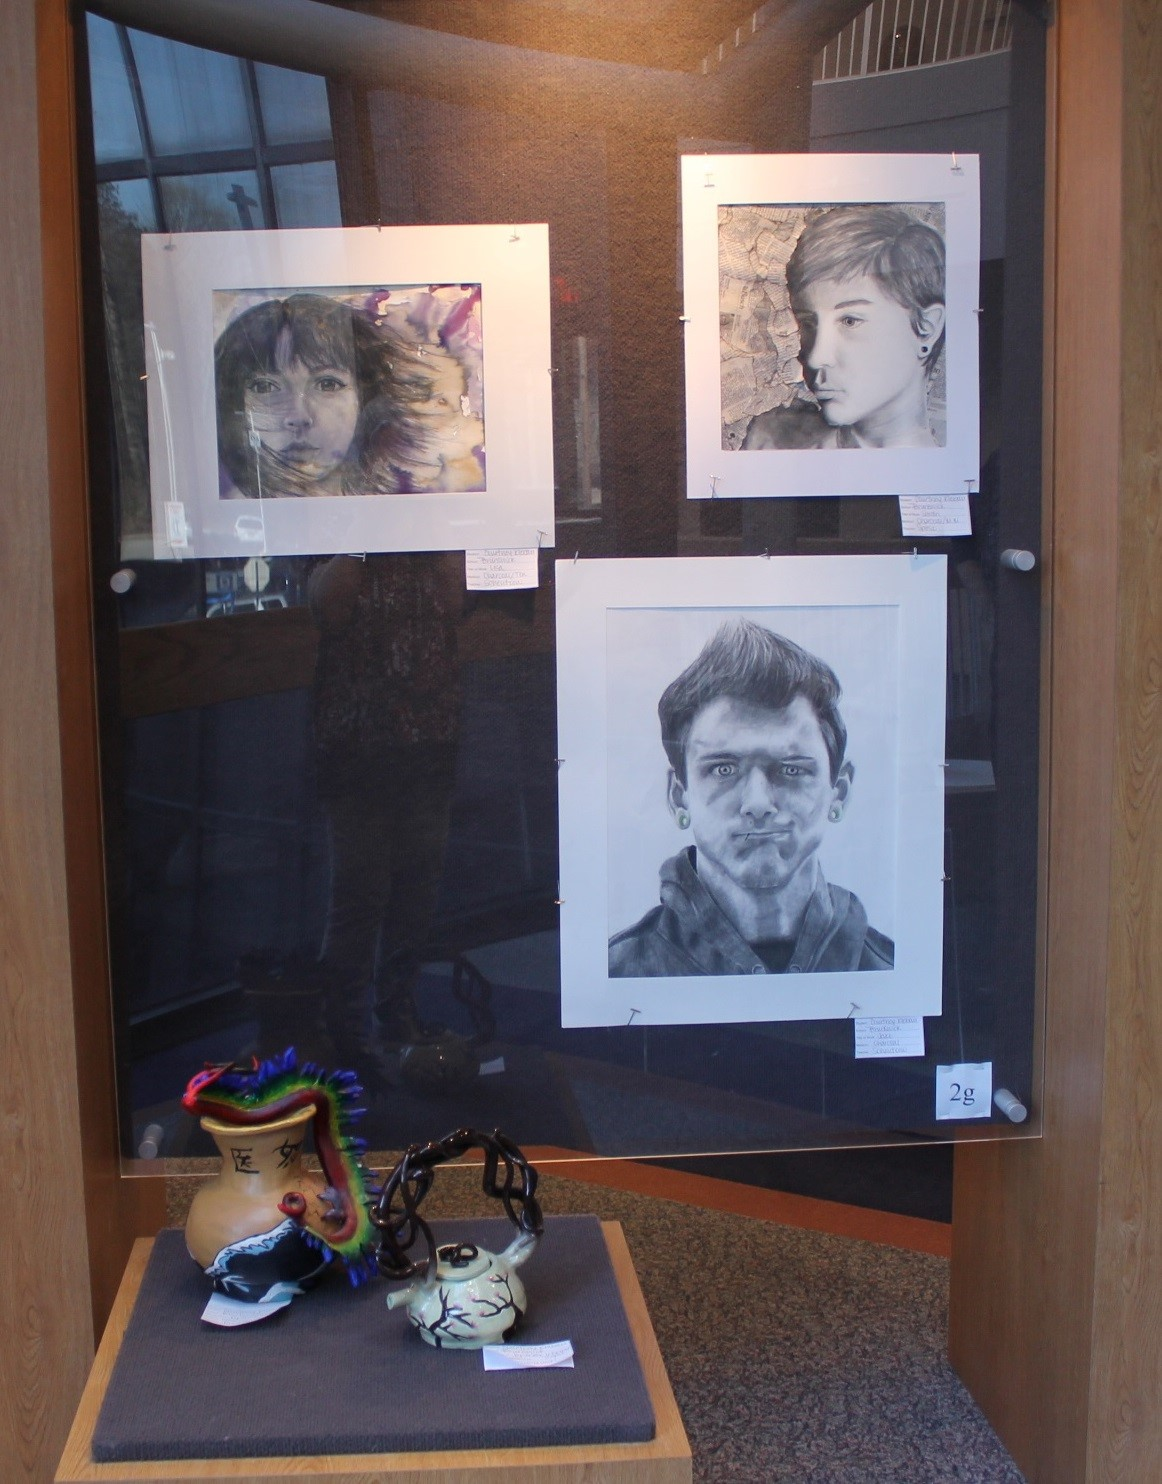 Courtney Klebau's artwork display